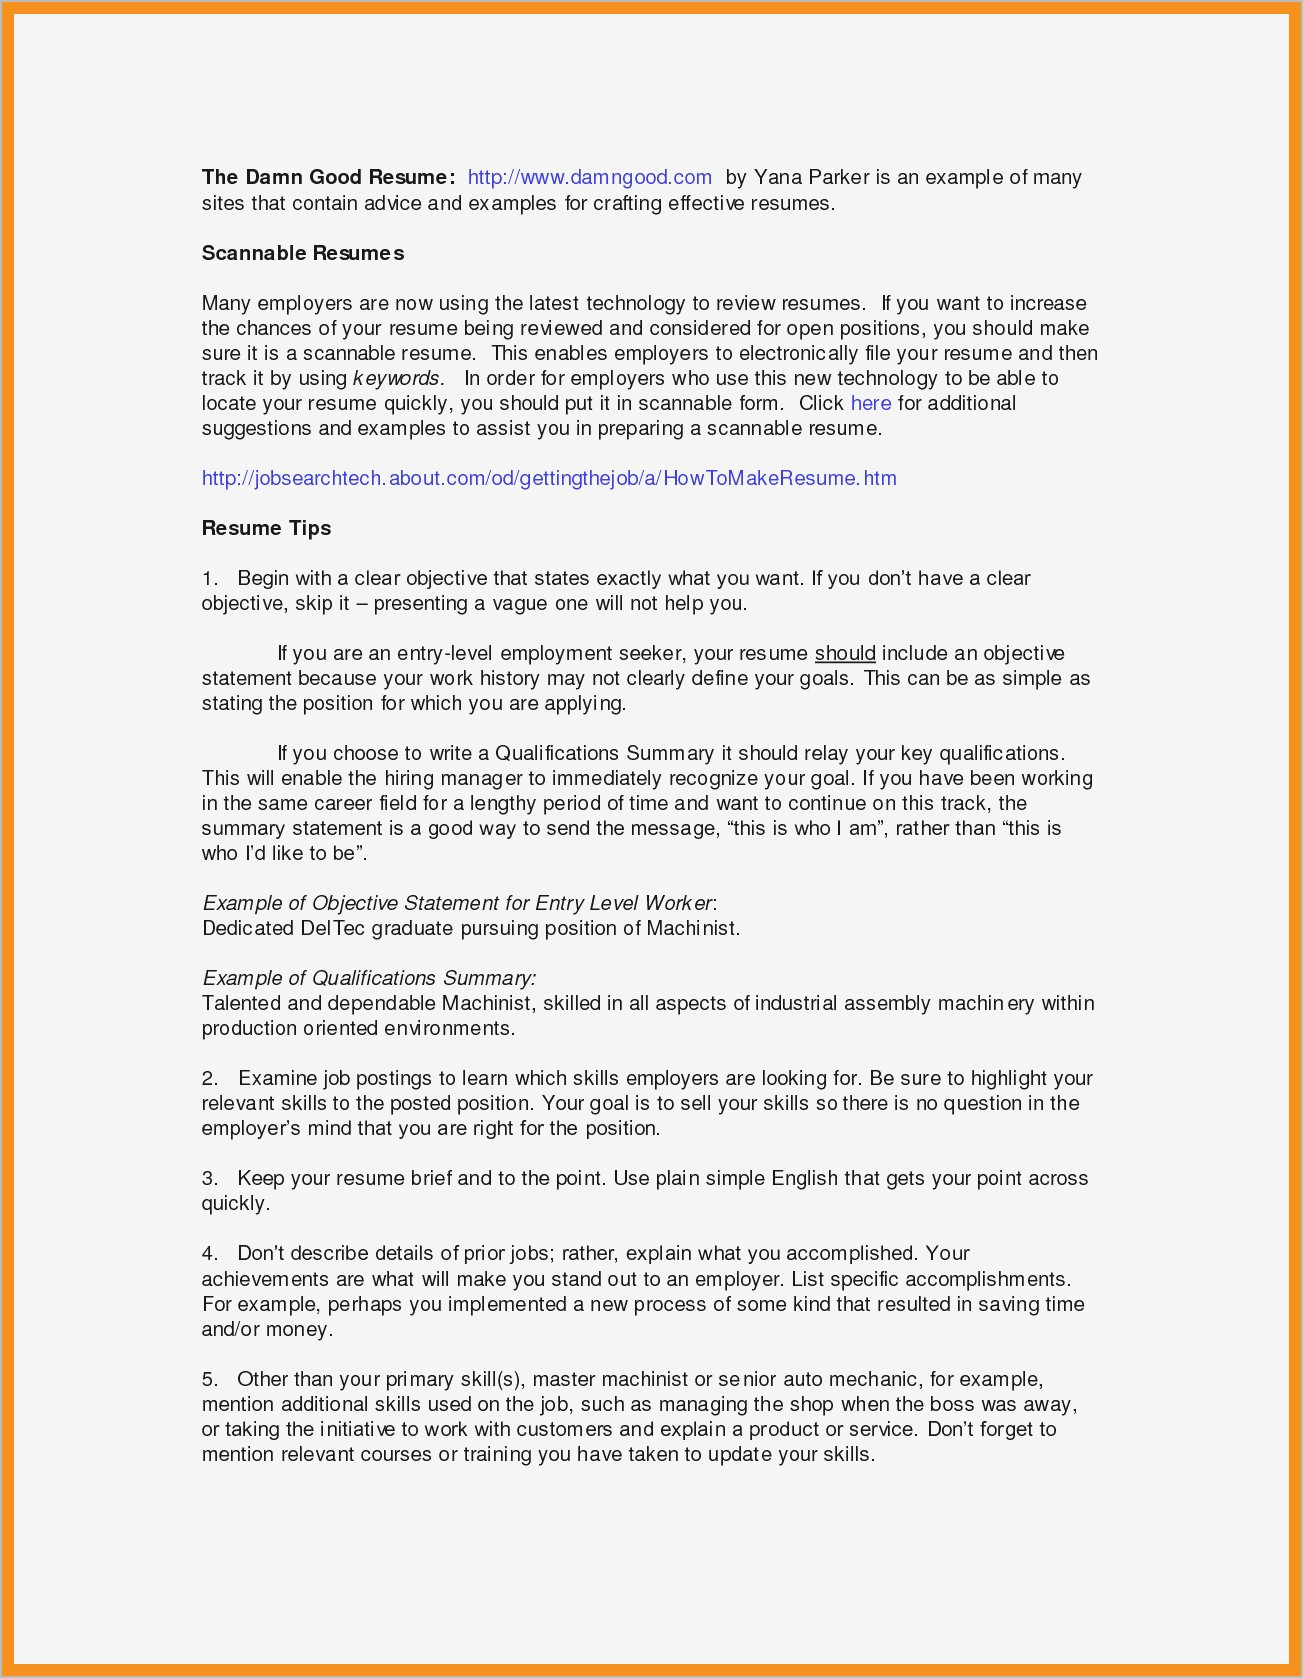 Brief Summary for Resume - Career Summary Resume Awesome Resume Career Overview Selo L Ink